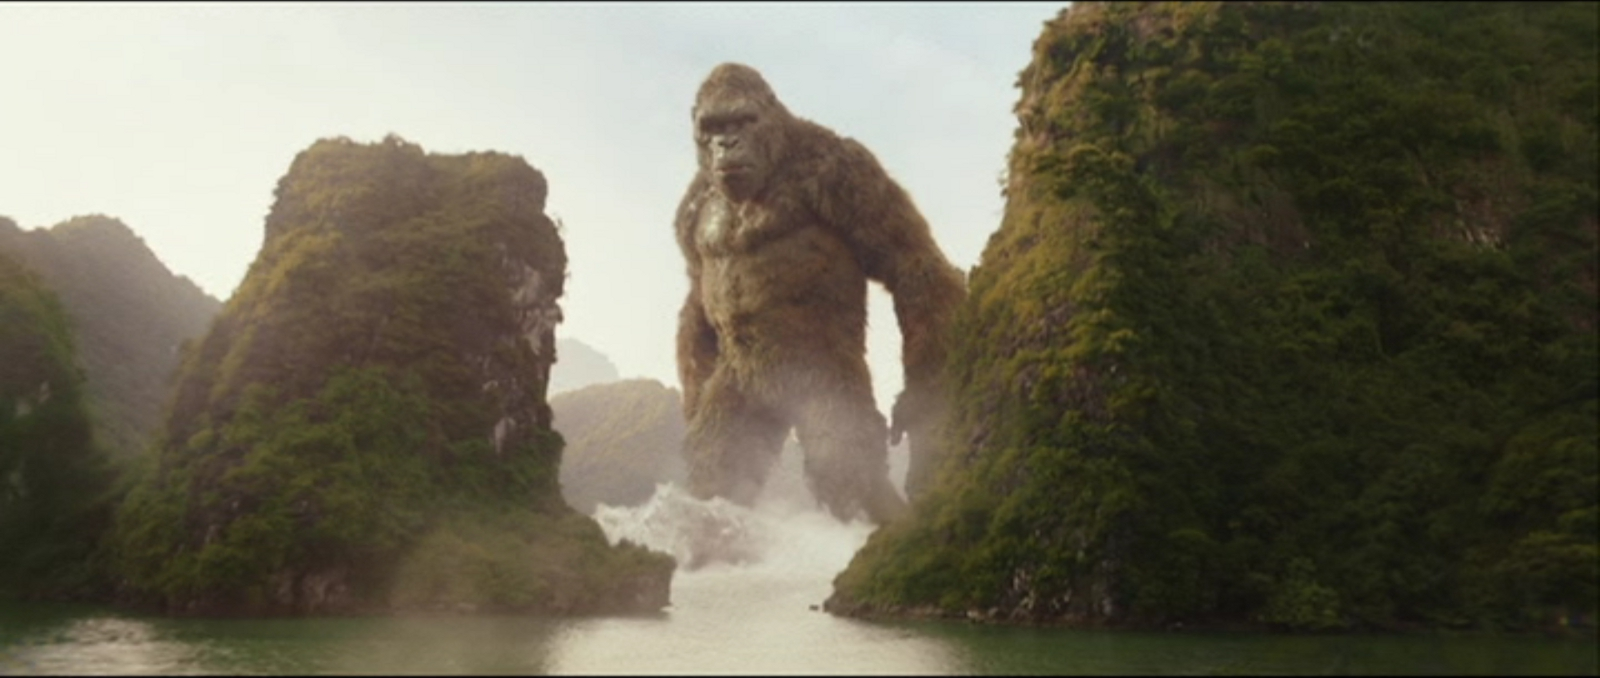 Kong, God-King of Skull Island